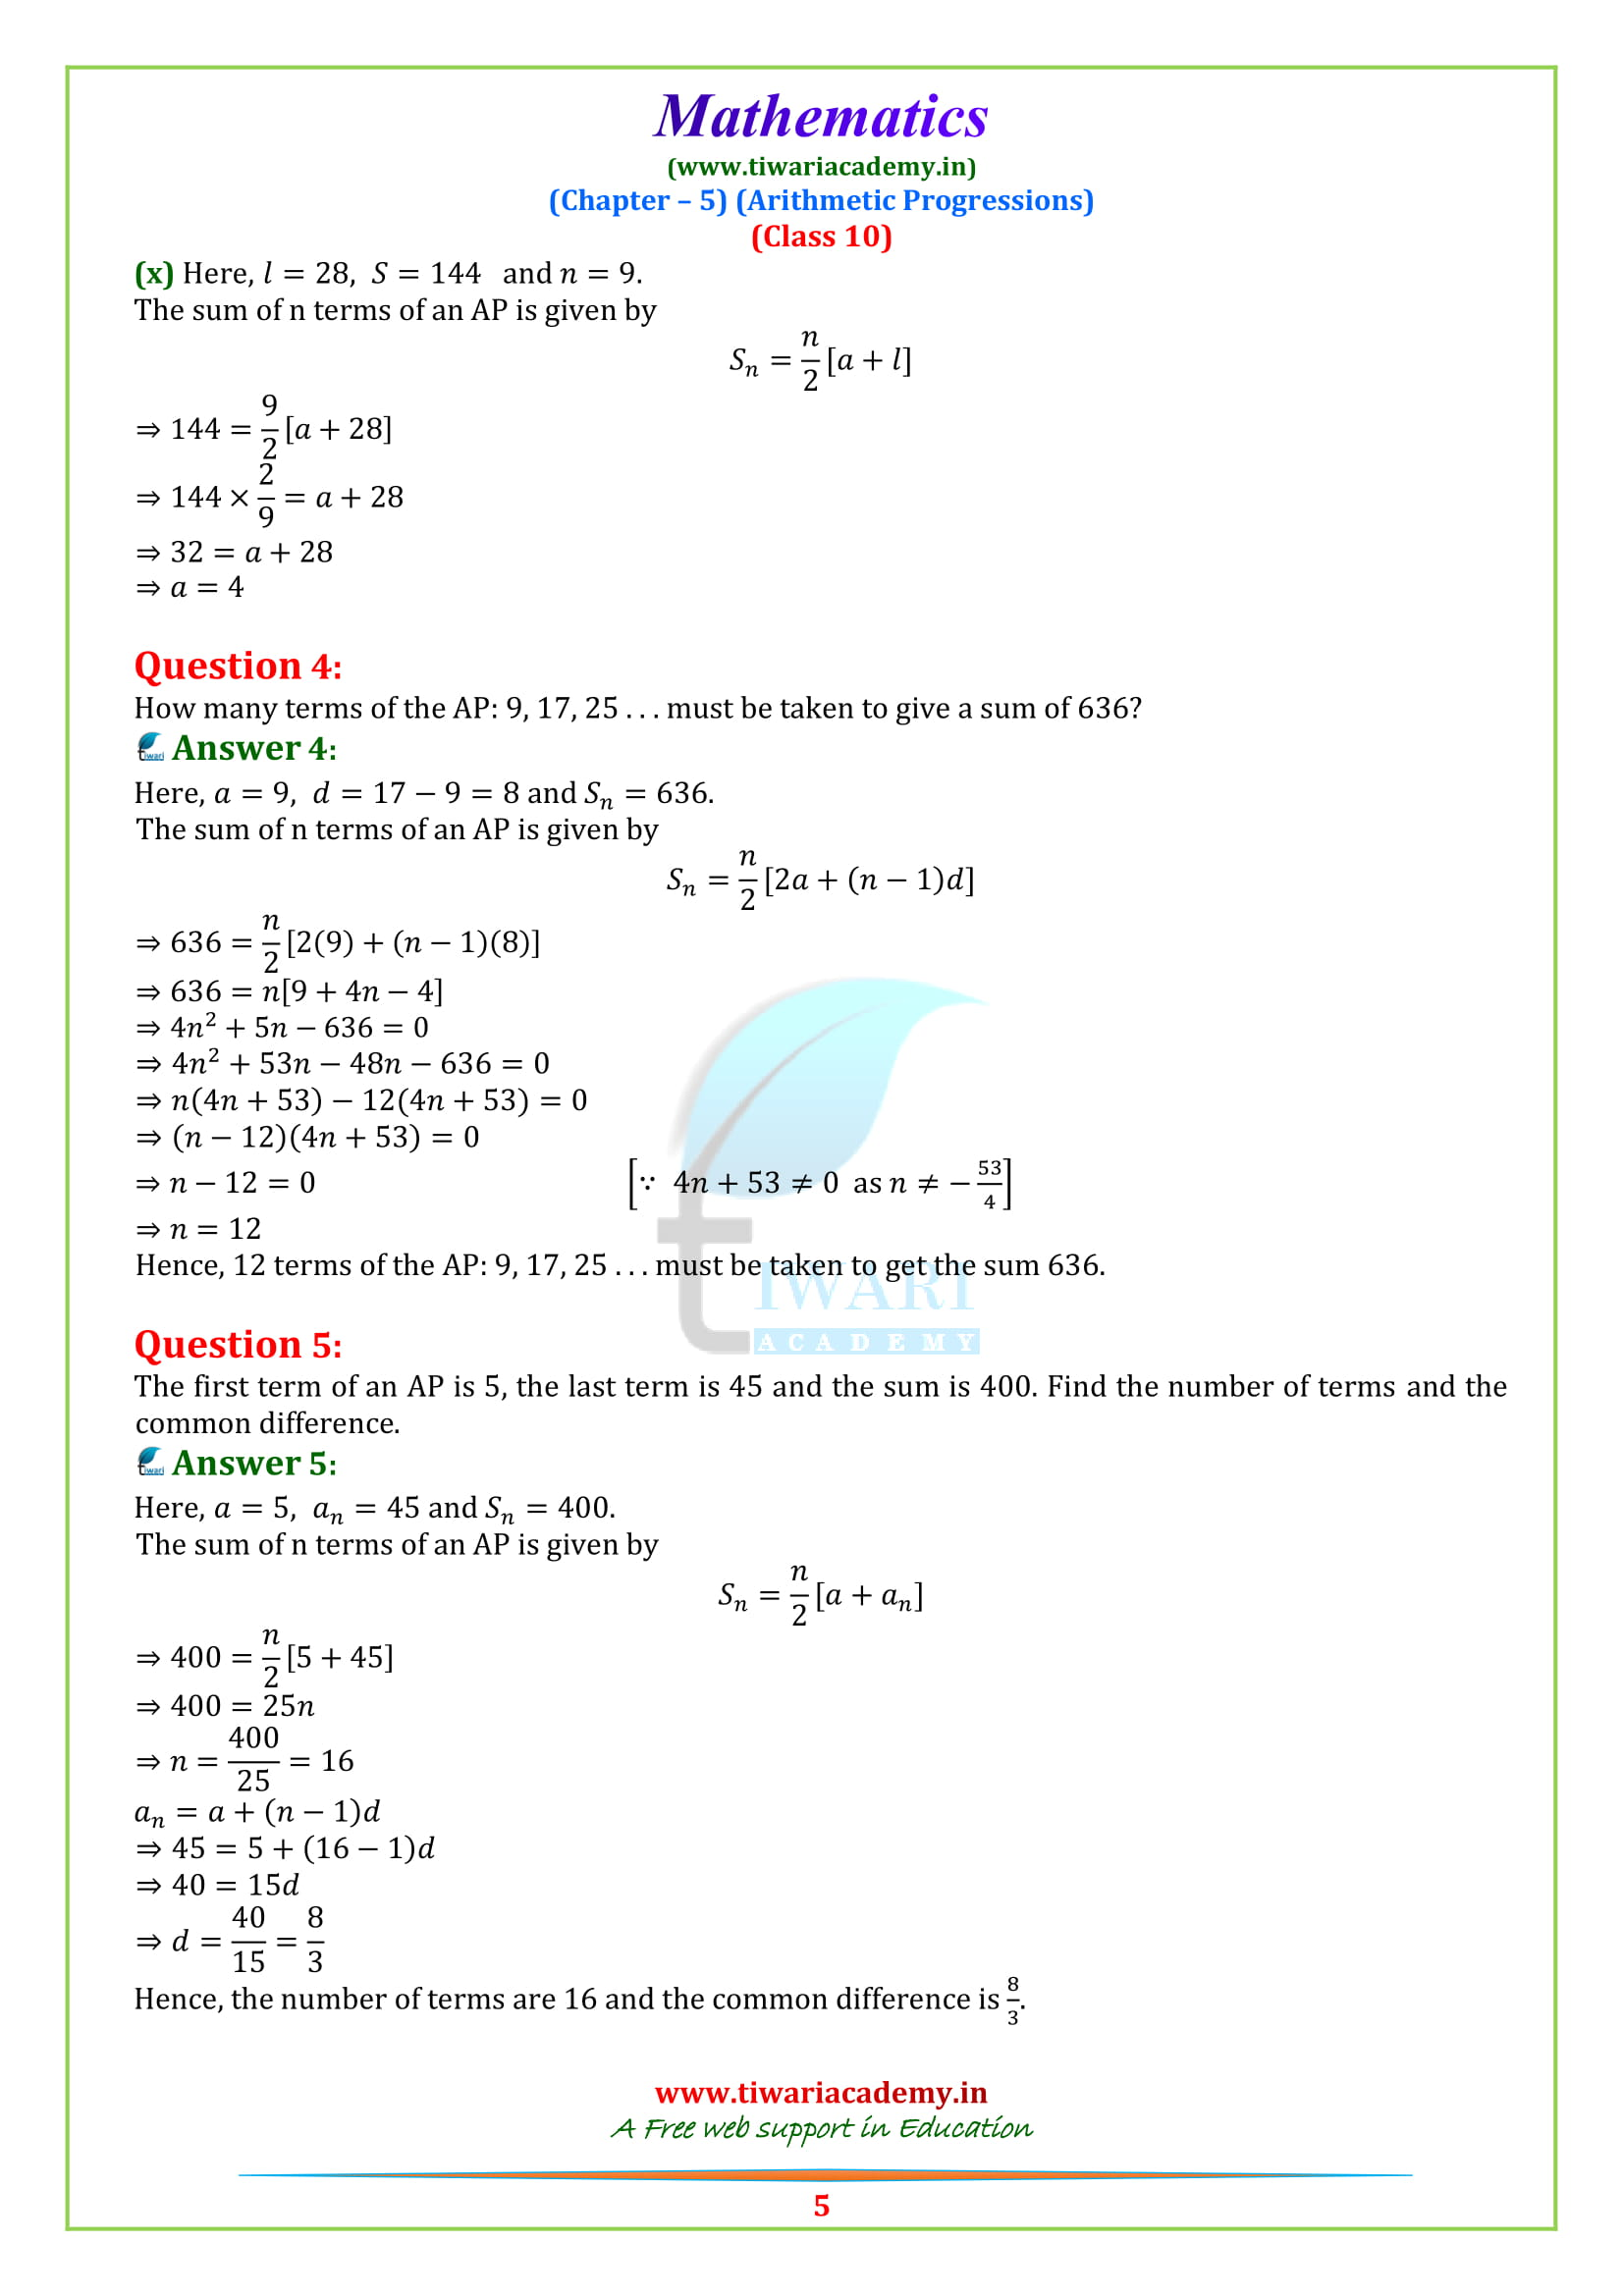 NCERT Sols for class 10 Maths exercise 5.3 in English medium